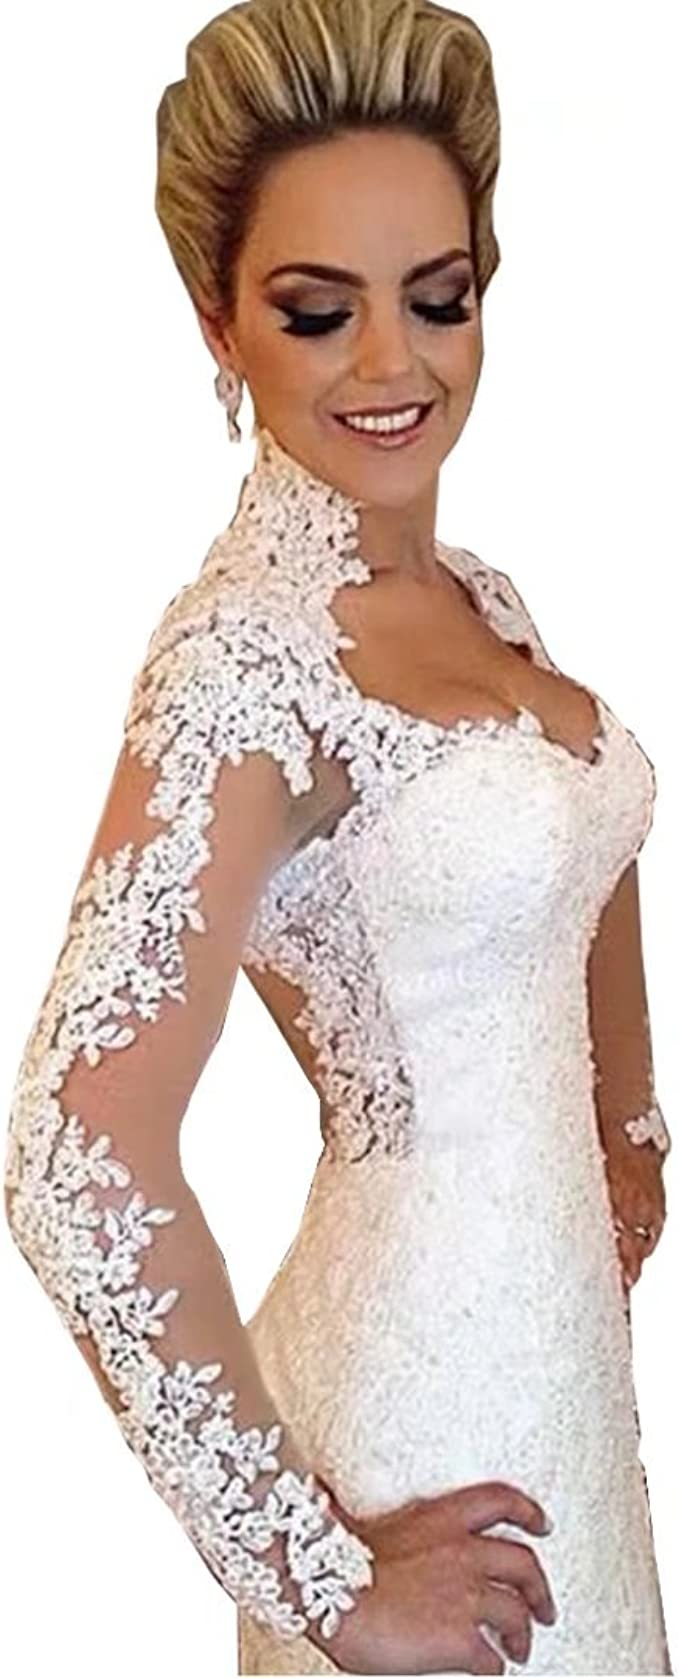 size 2 Lace Wedding Dress Vintage 60s Bridal Dress Long Lacy Retro Bride Dress White Lace Wedding Gown Wedding Gown with Train